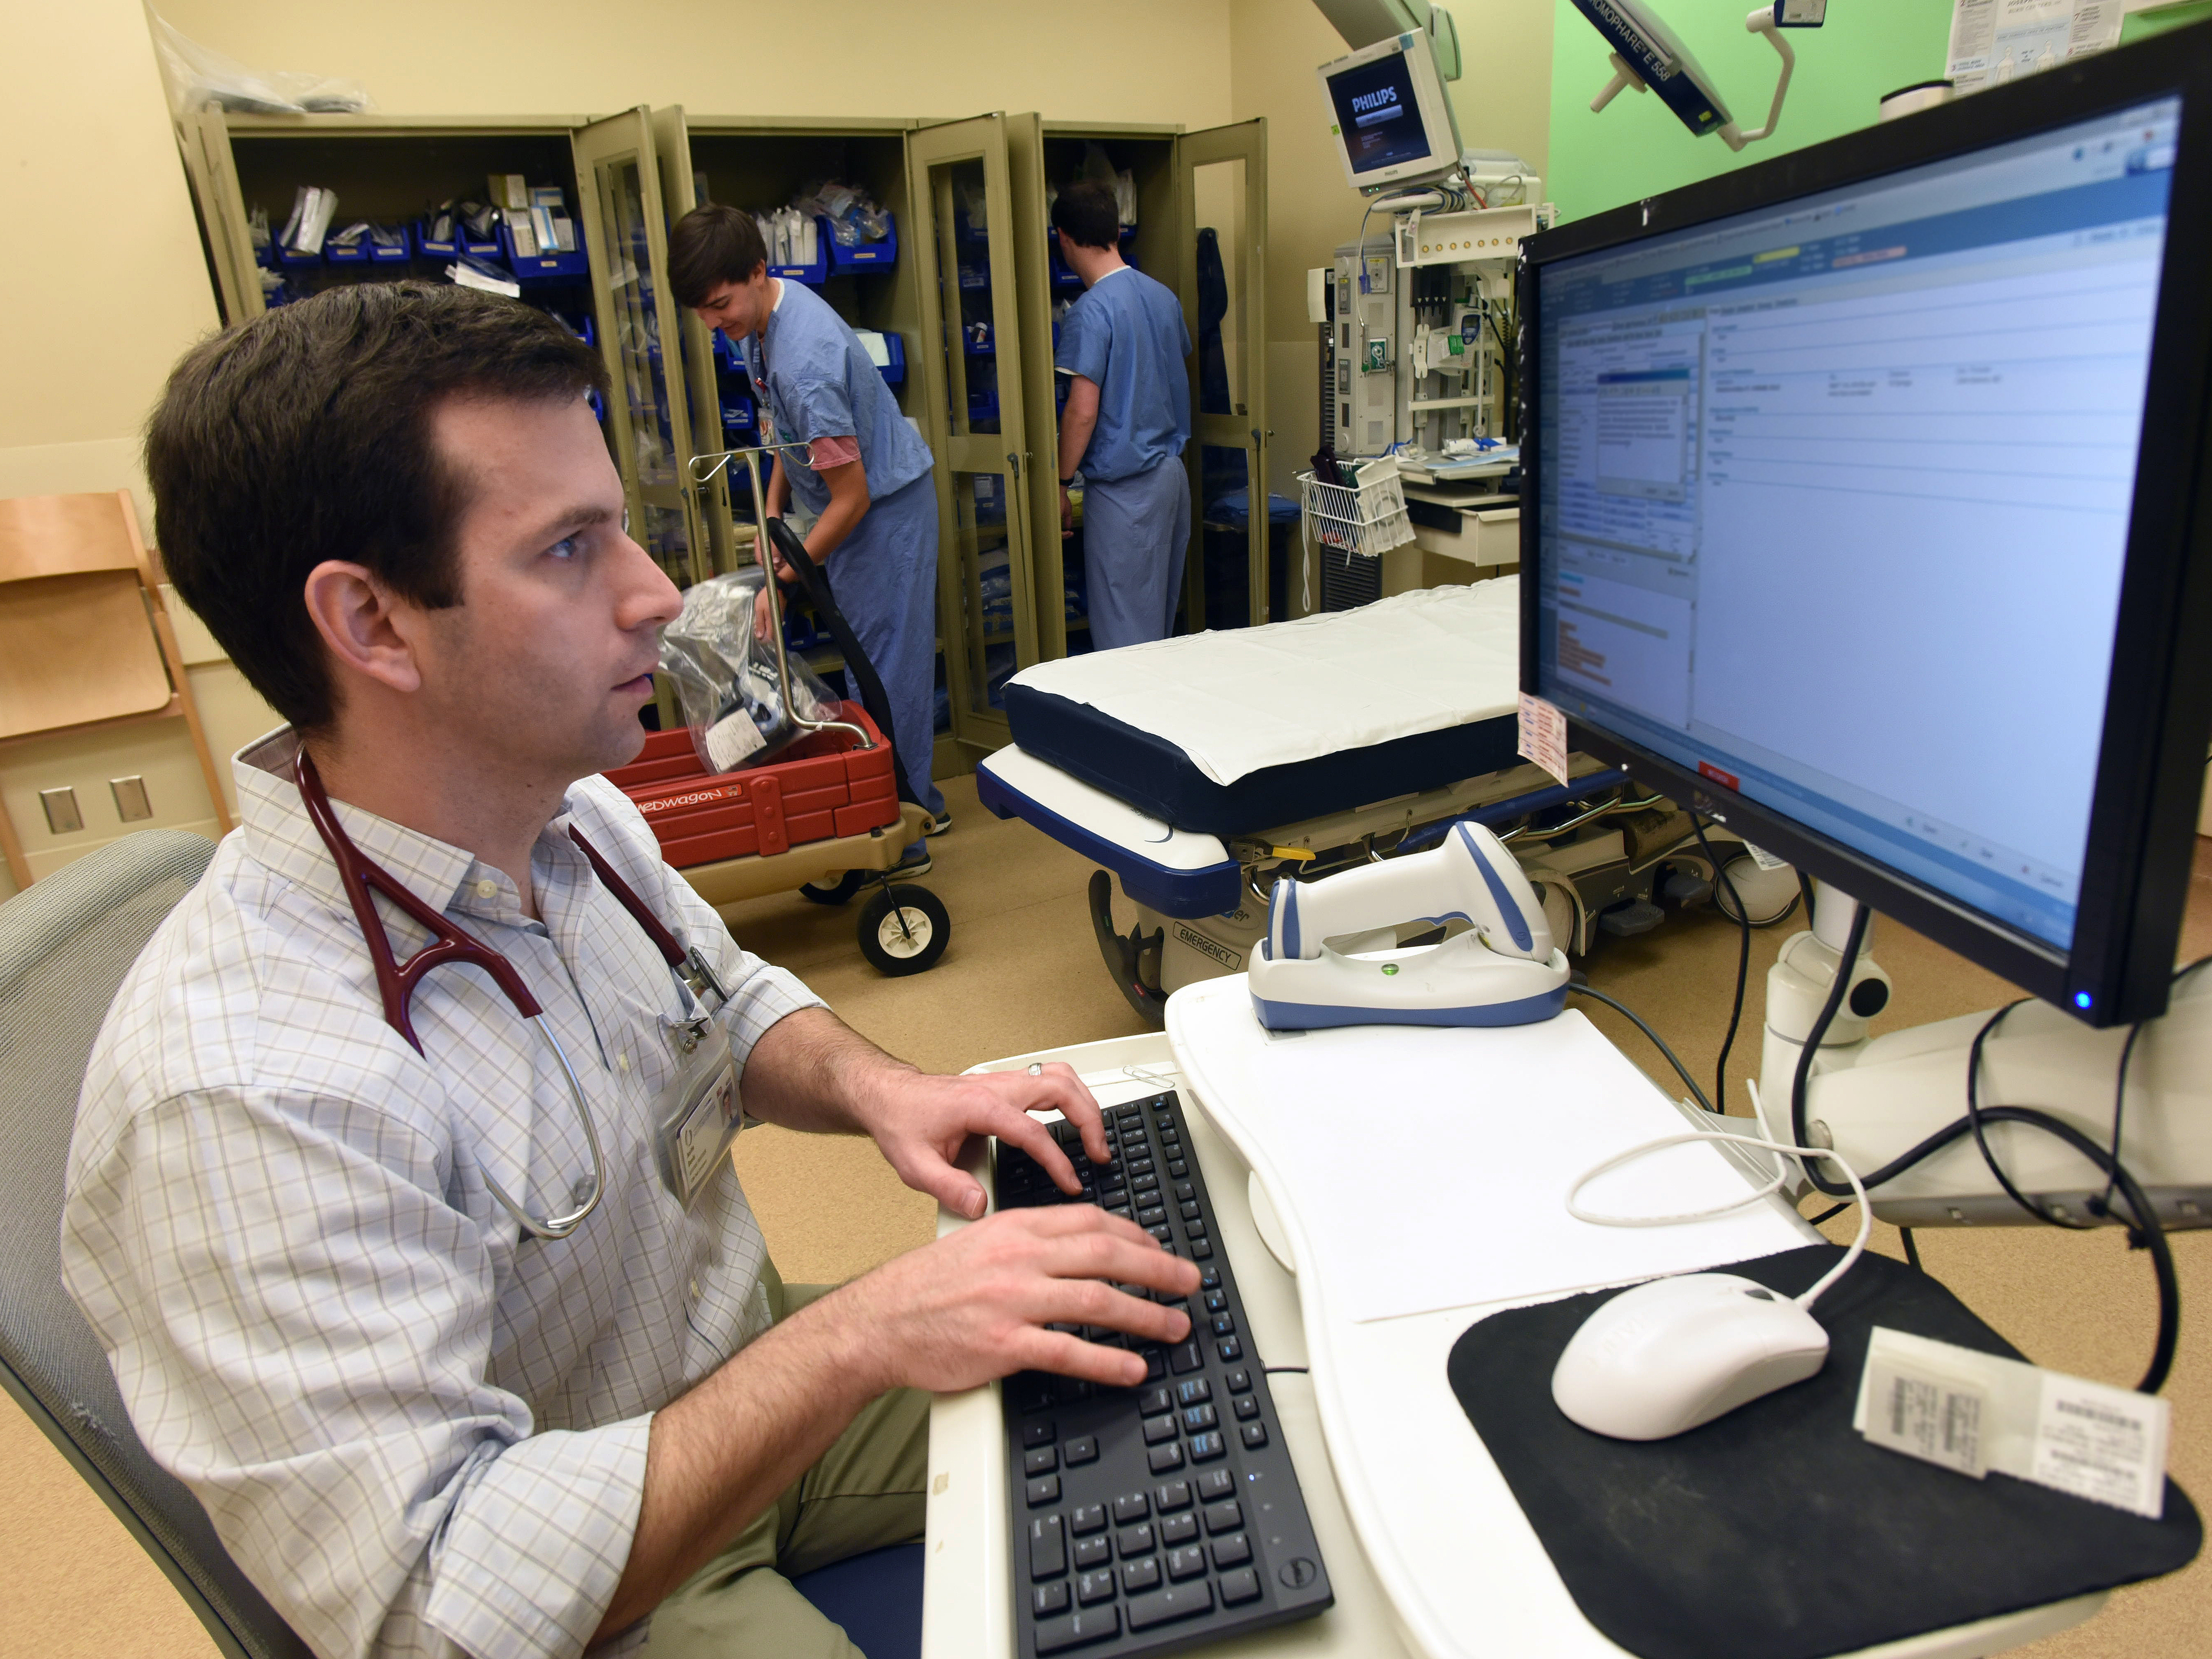 Dr. Justin Davis, assistant professor of pediatric emergency medicine, examines a patient's health records in the pediatric emergency department. A new information exchange with the Division of Medicaid allows him to also access those patient records.